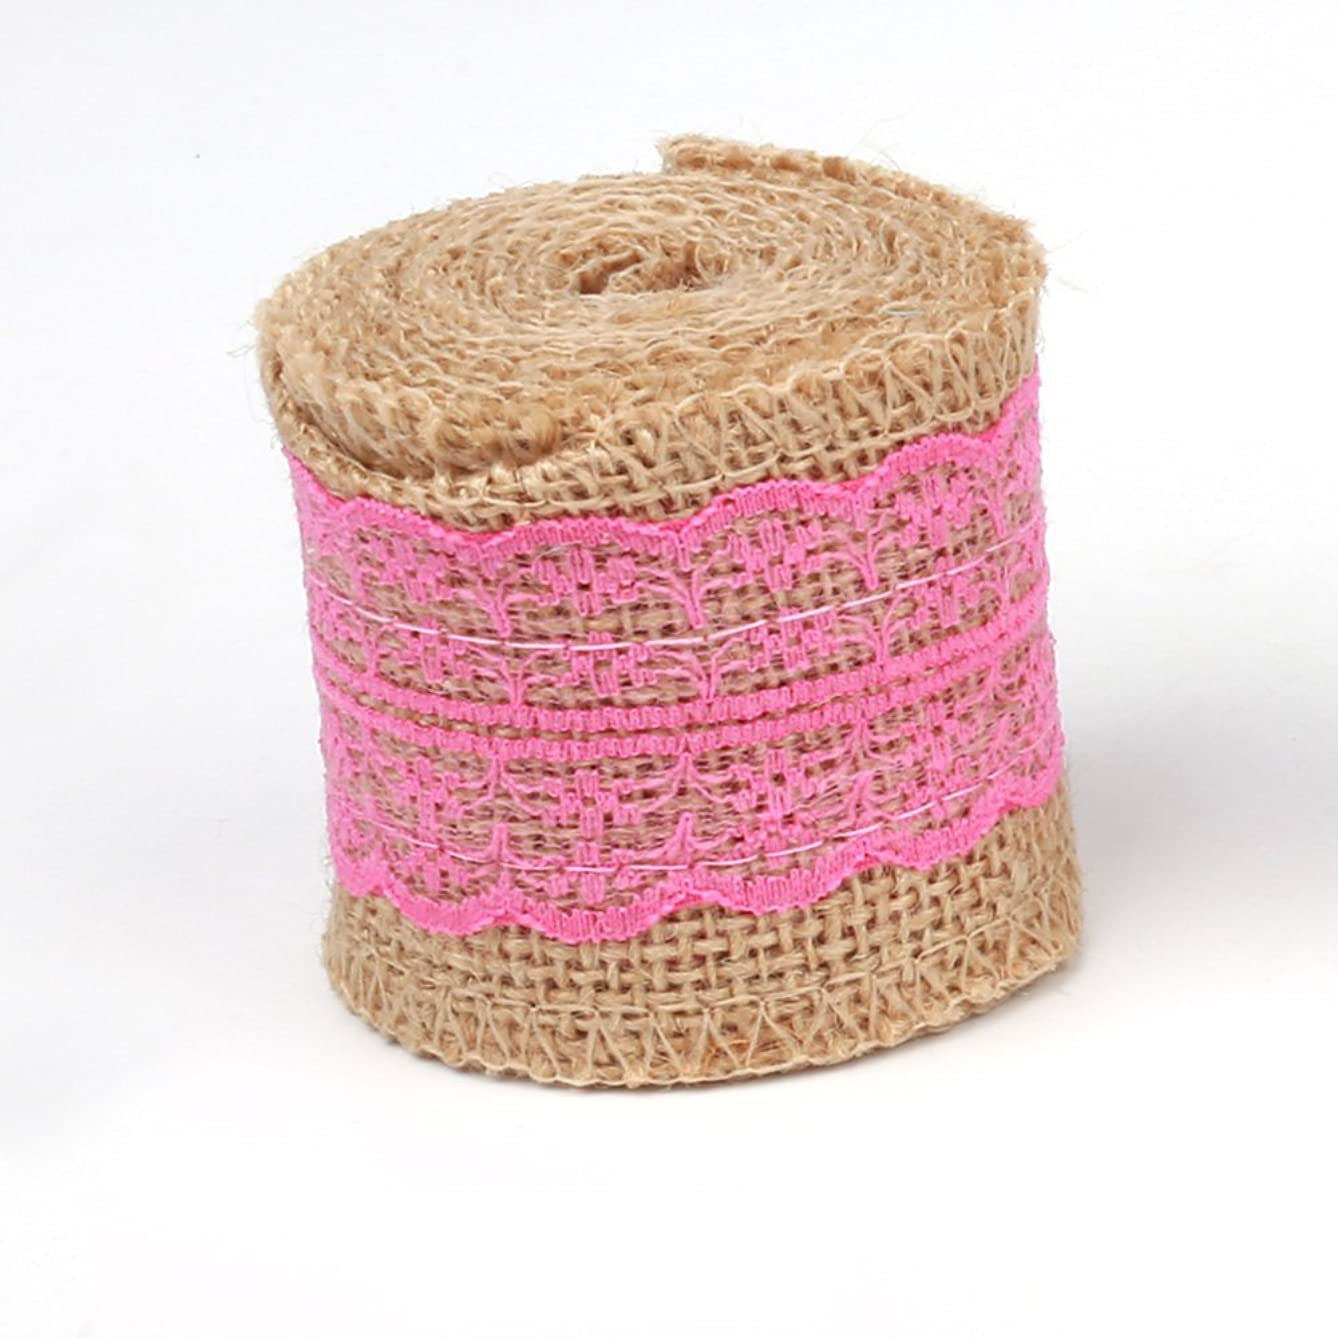 Z-COLOR 2M DIY Cotton Lace Ribbon Sewing Tape Natural Jute Roll Multifunctional Burlap Trims Tape Rustic Wedding Party Decor Craft Tool (Pink)